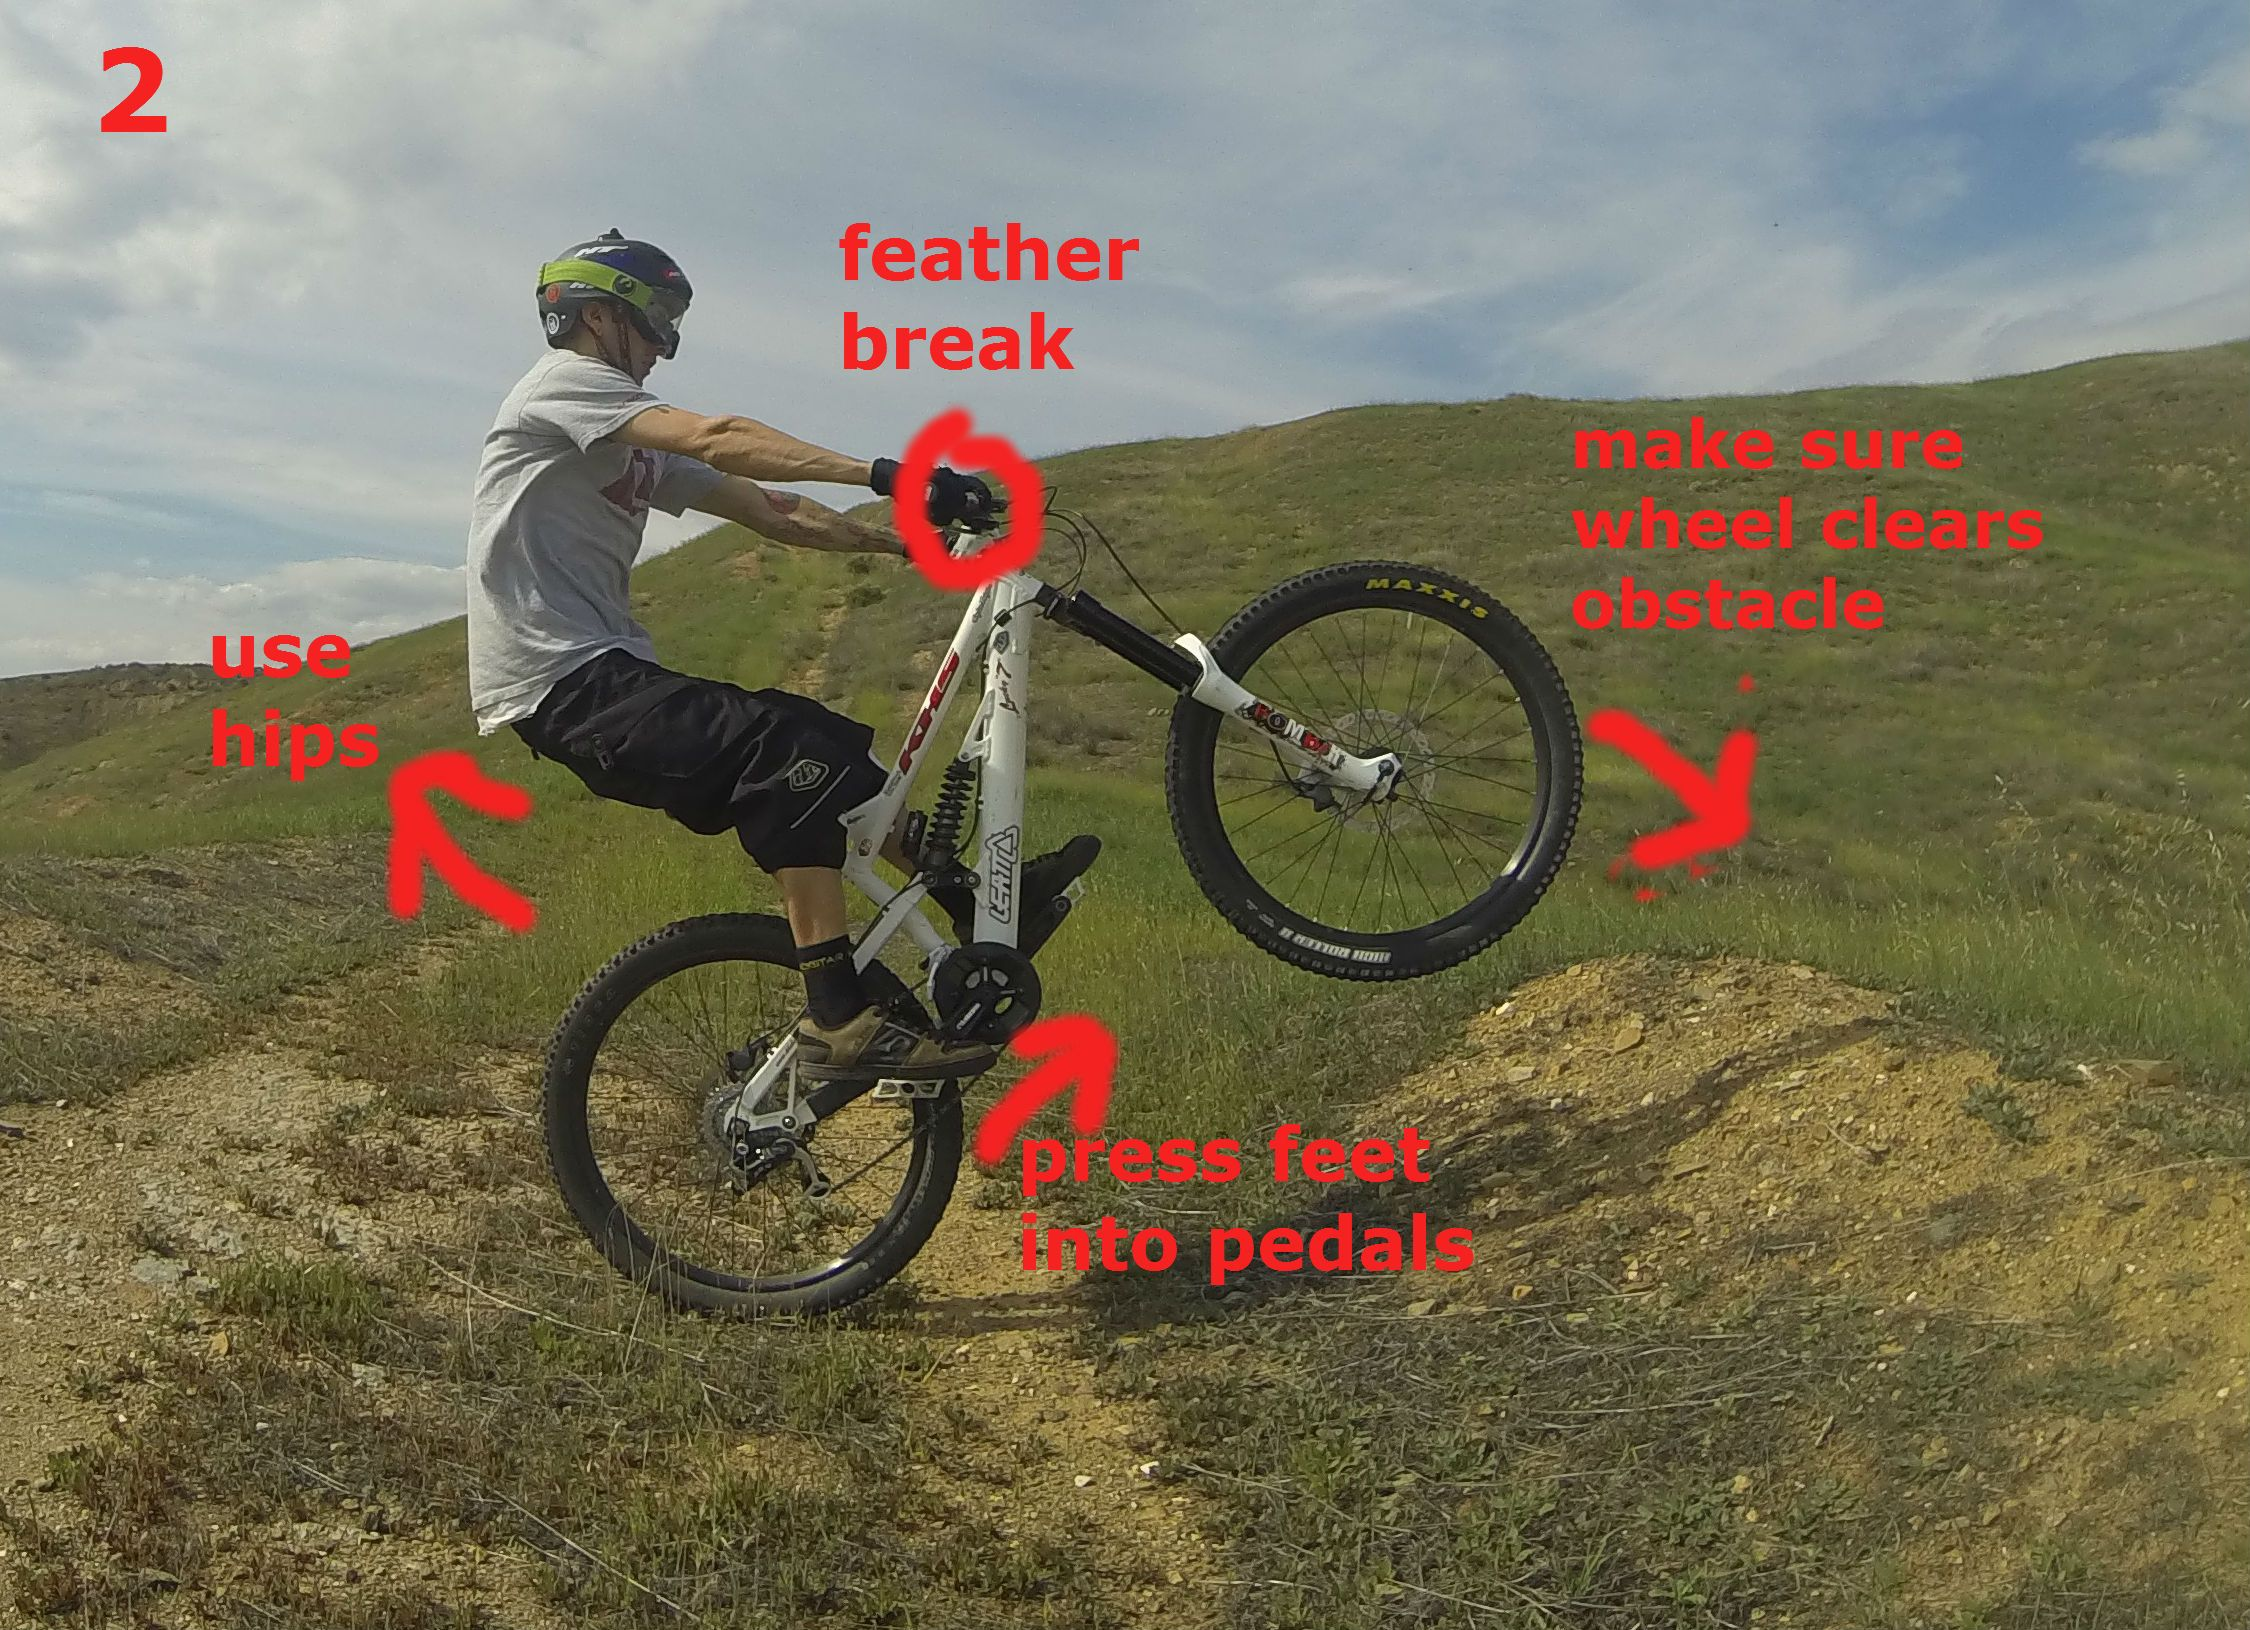 How To Manual Over Rollers And Obstacles Bike Riding Tips Riding Mountain Biking